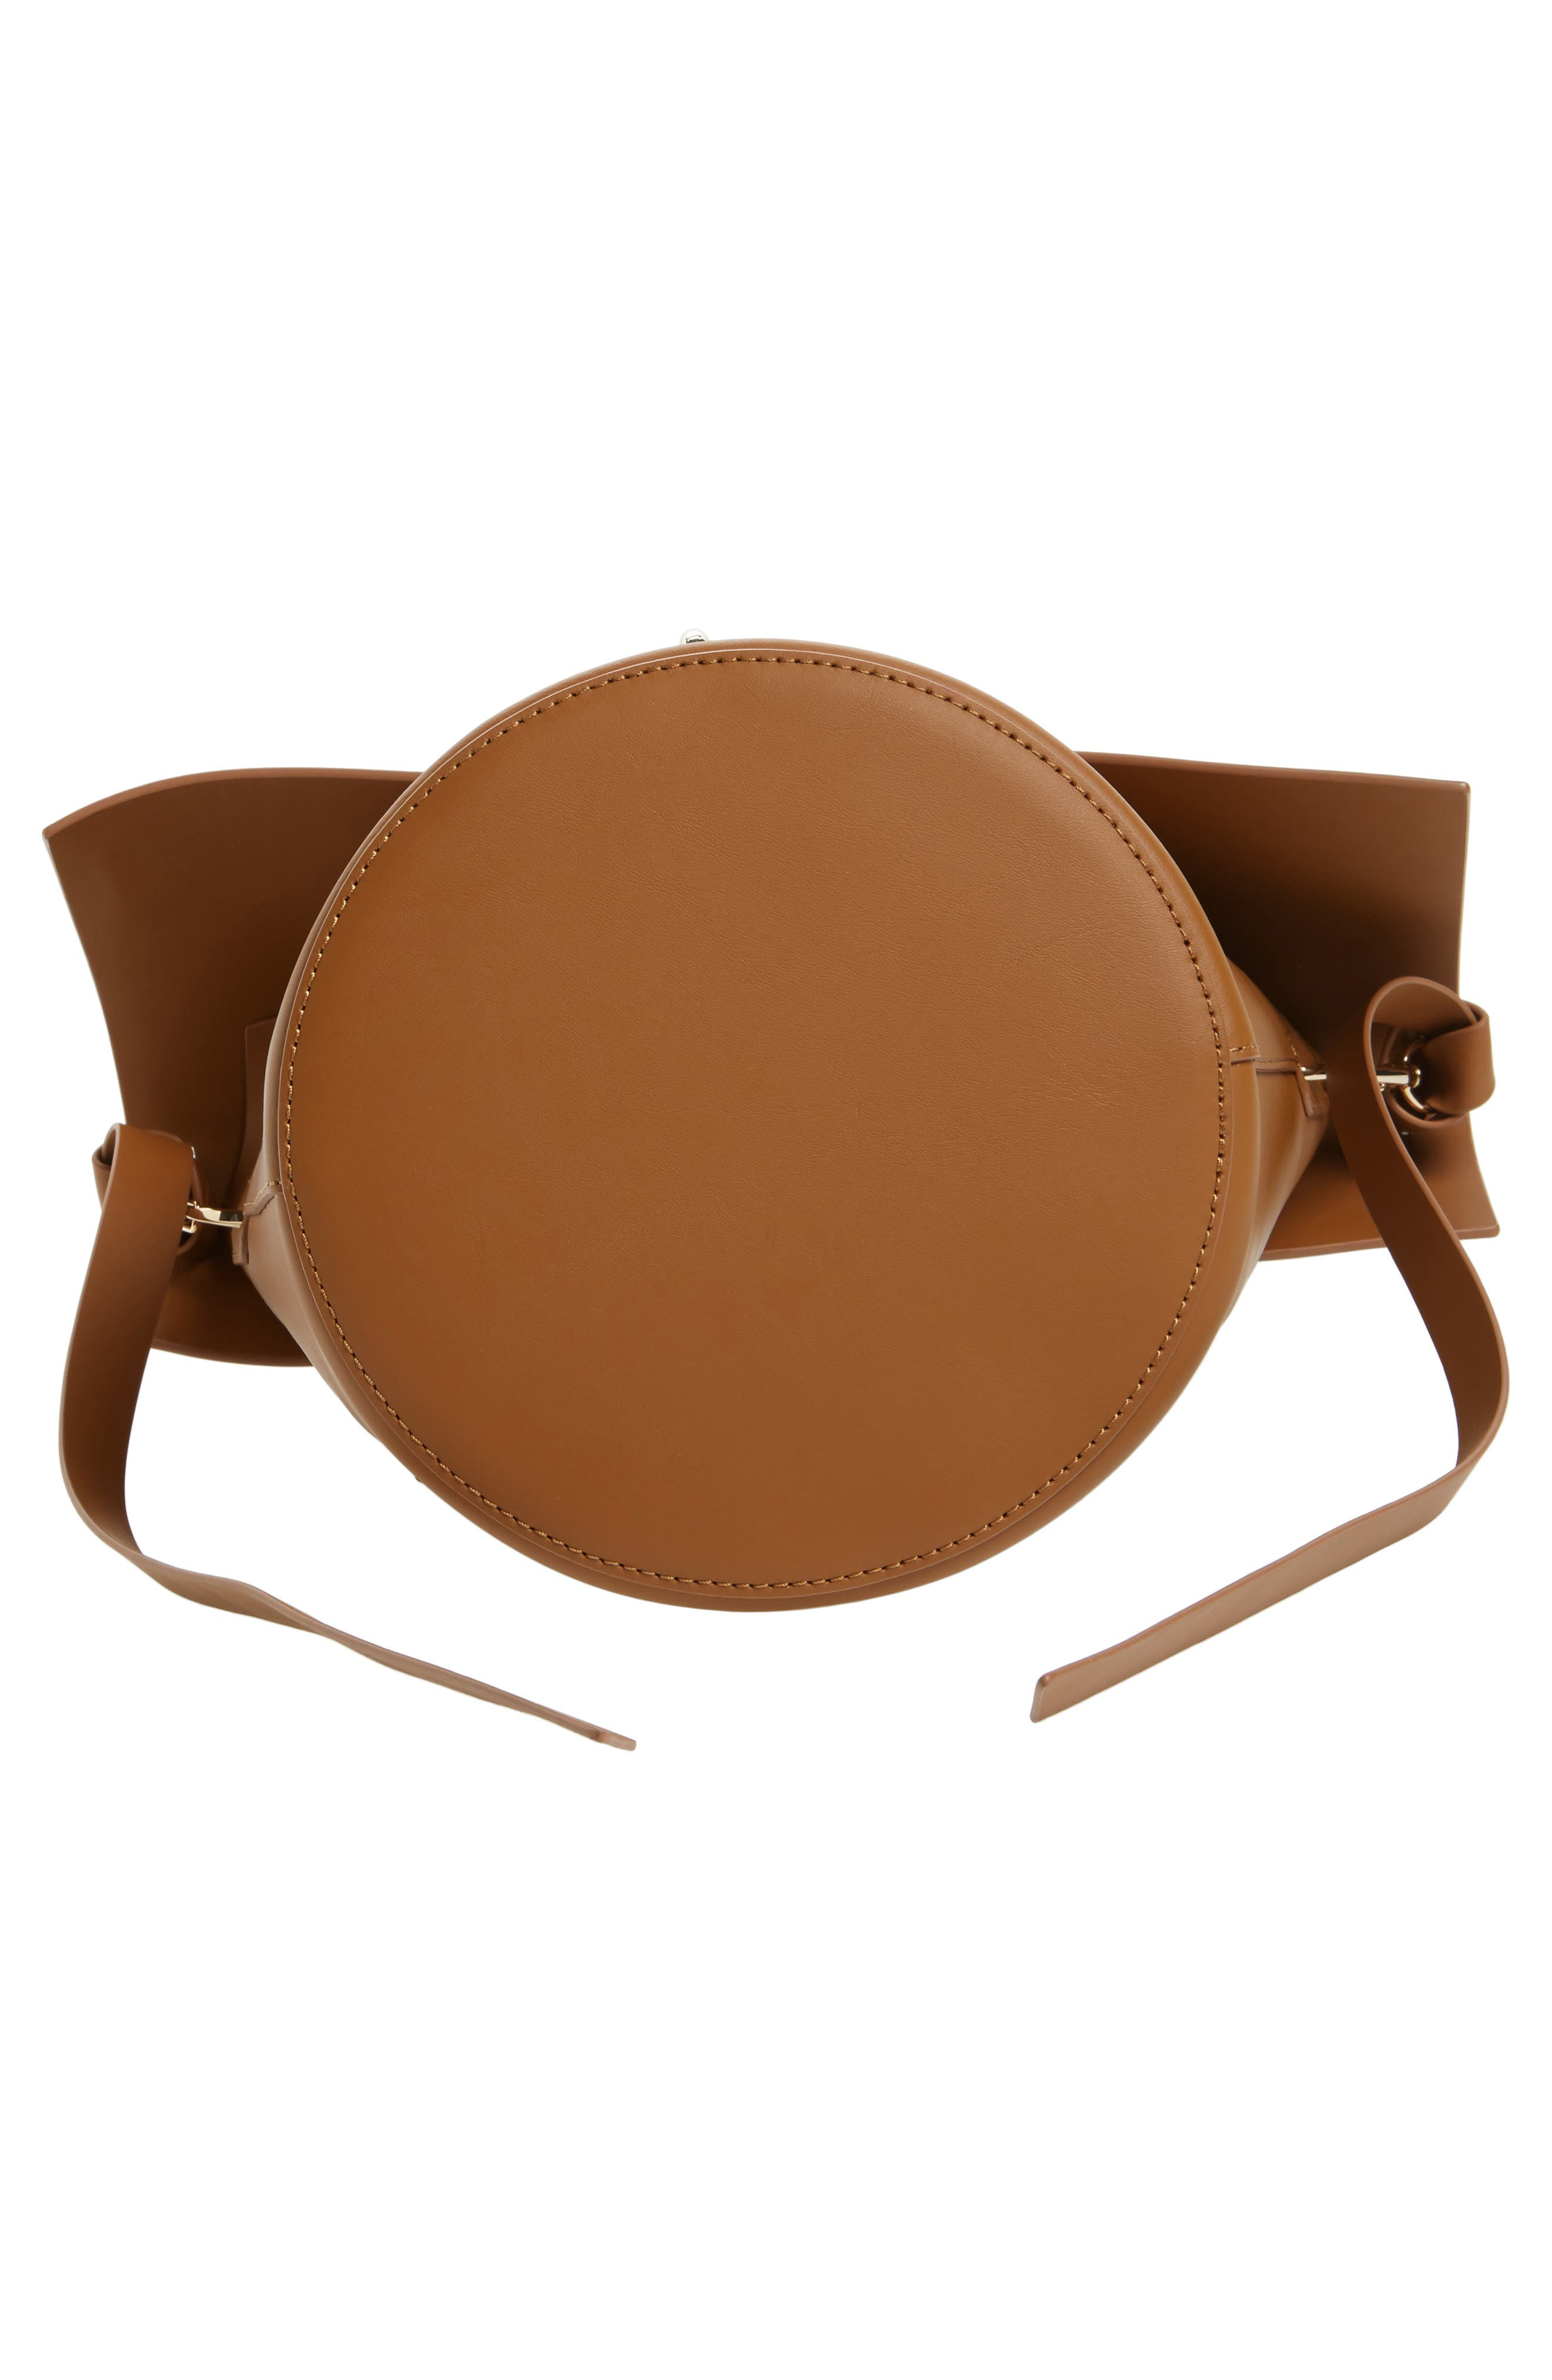 Belay Leather Bucket Bag,                             Alternate thumbnail 5, color,                             Camel